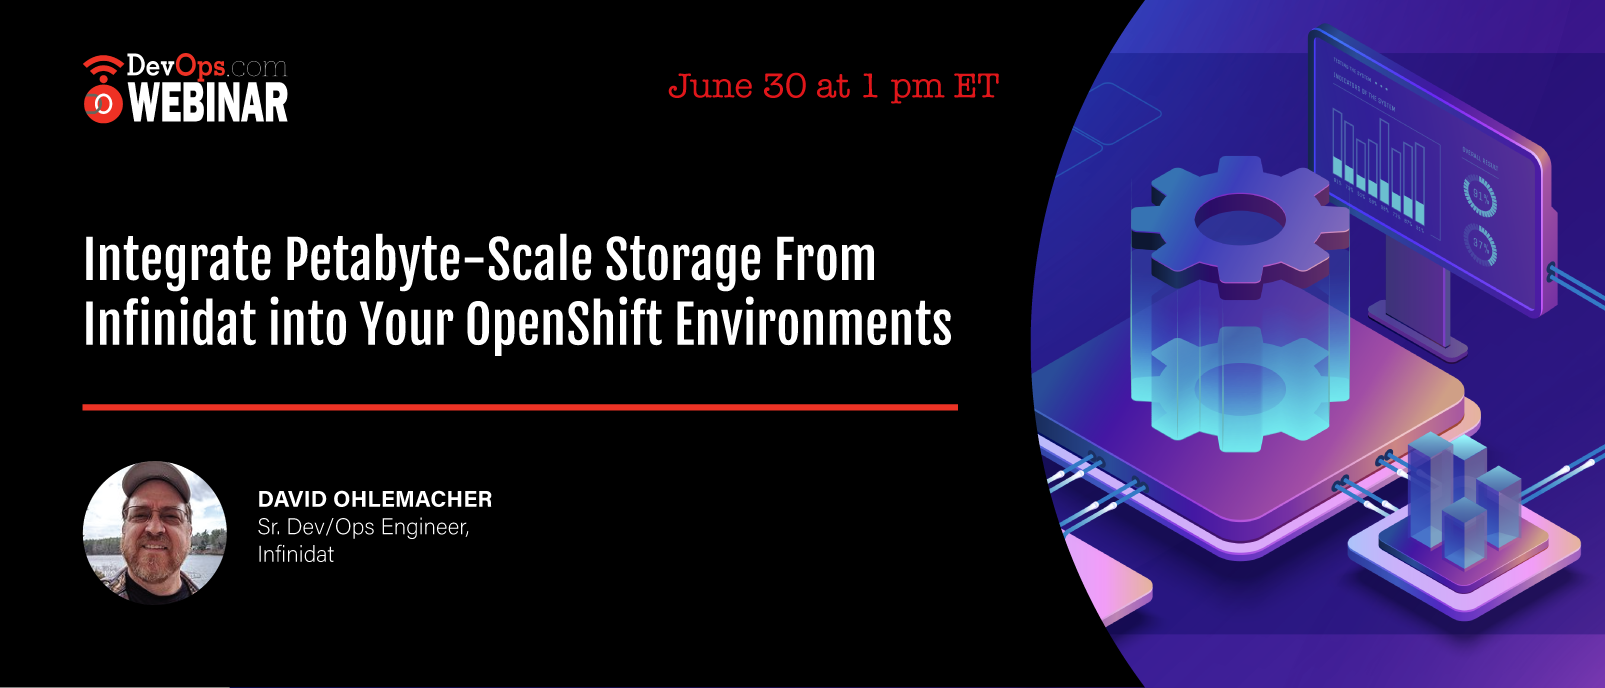 Integrate Petabyte-Scale Storage From Infinidat Into Your OpenShift Environments